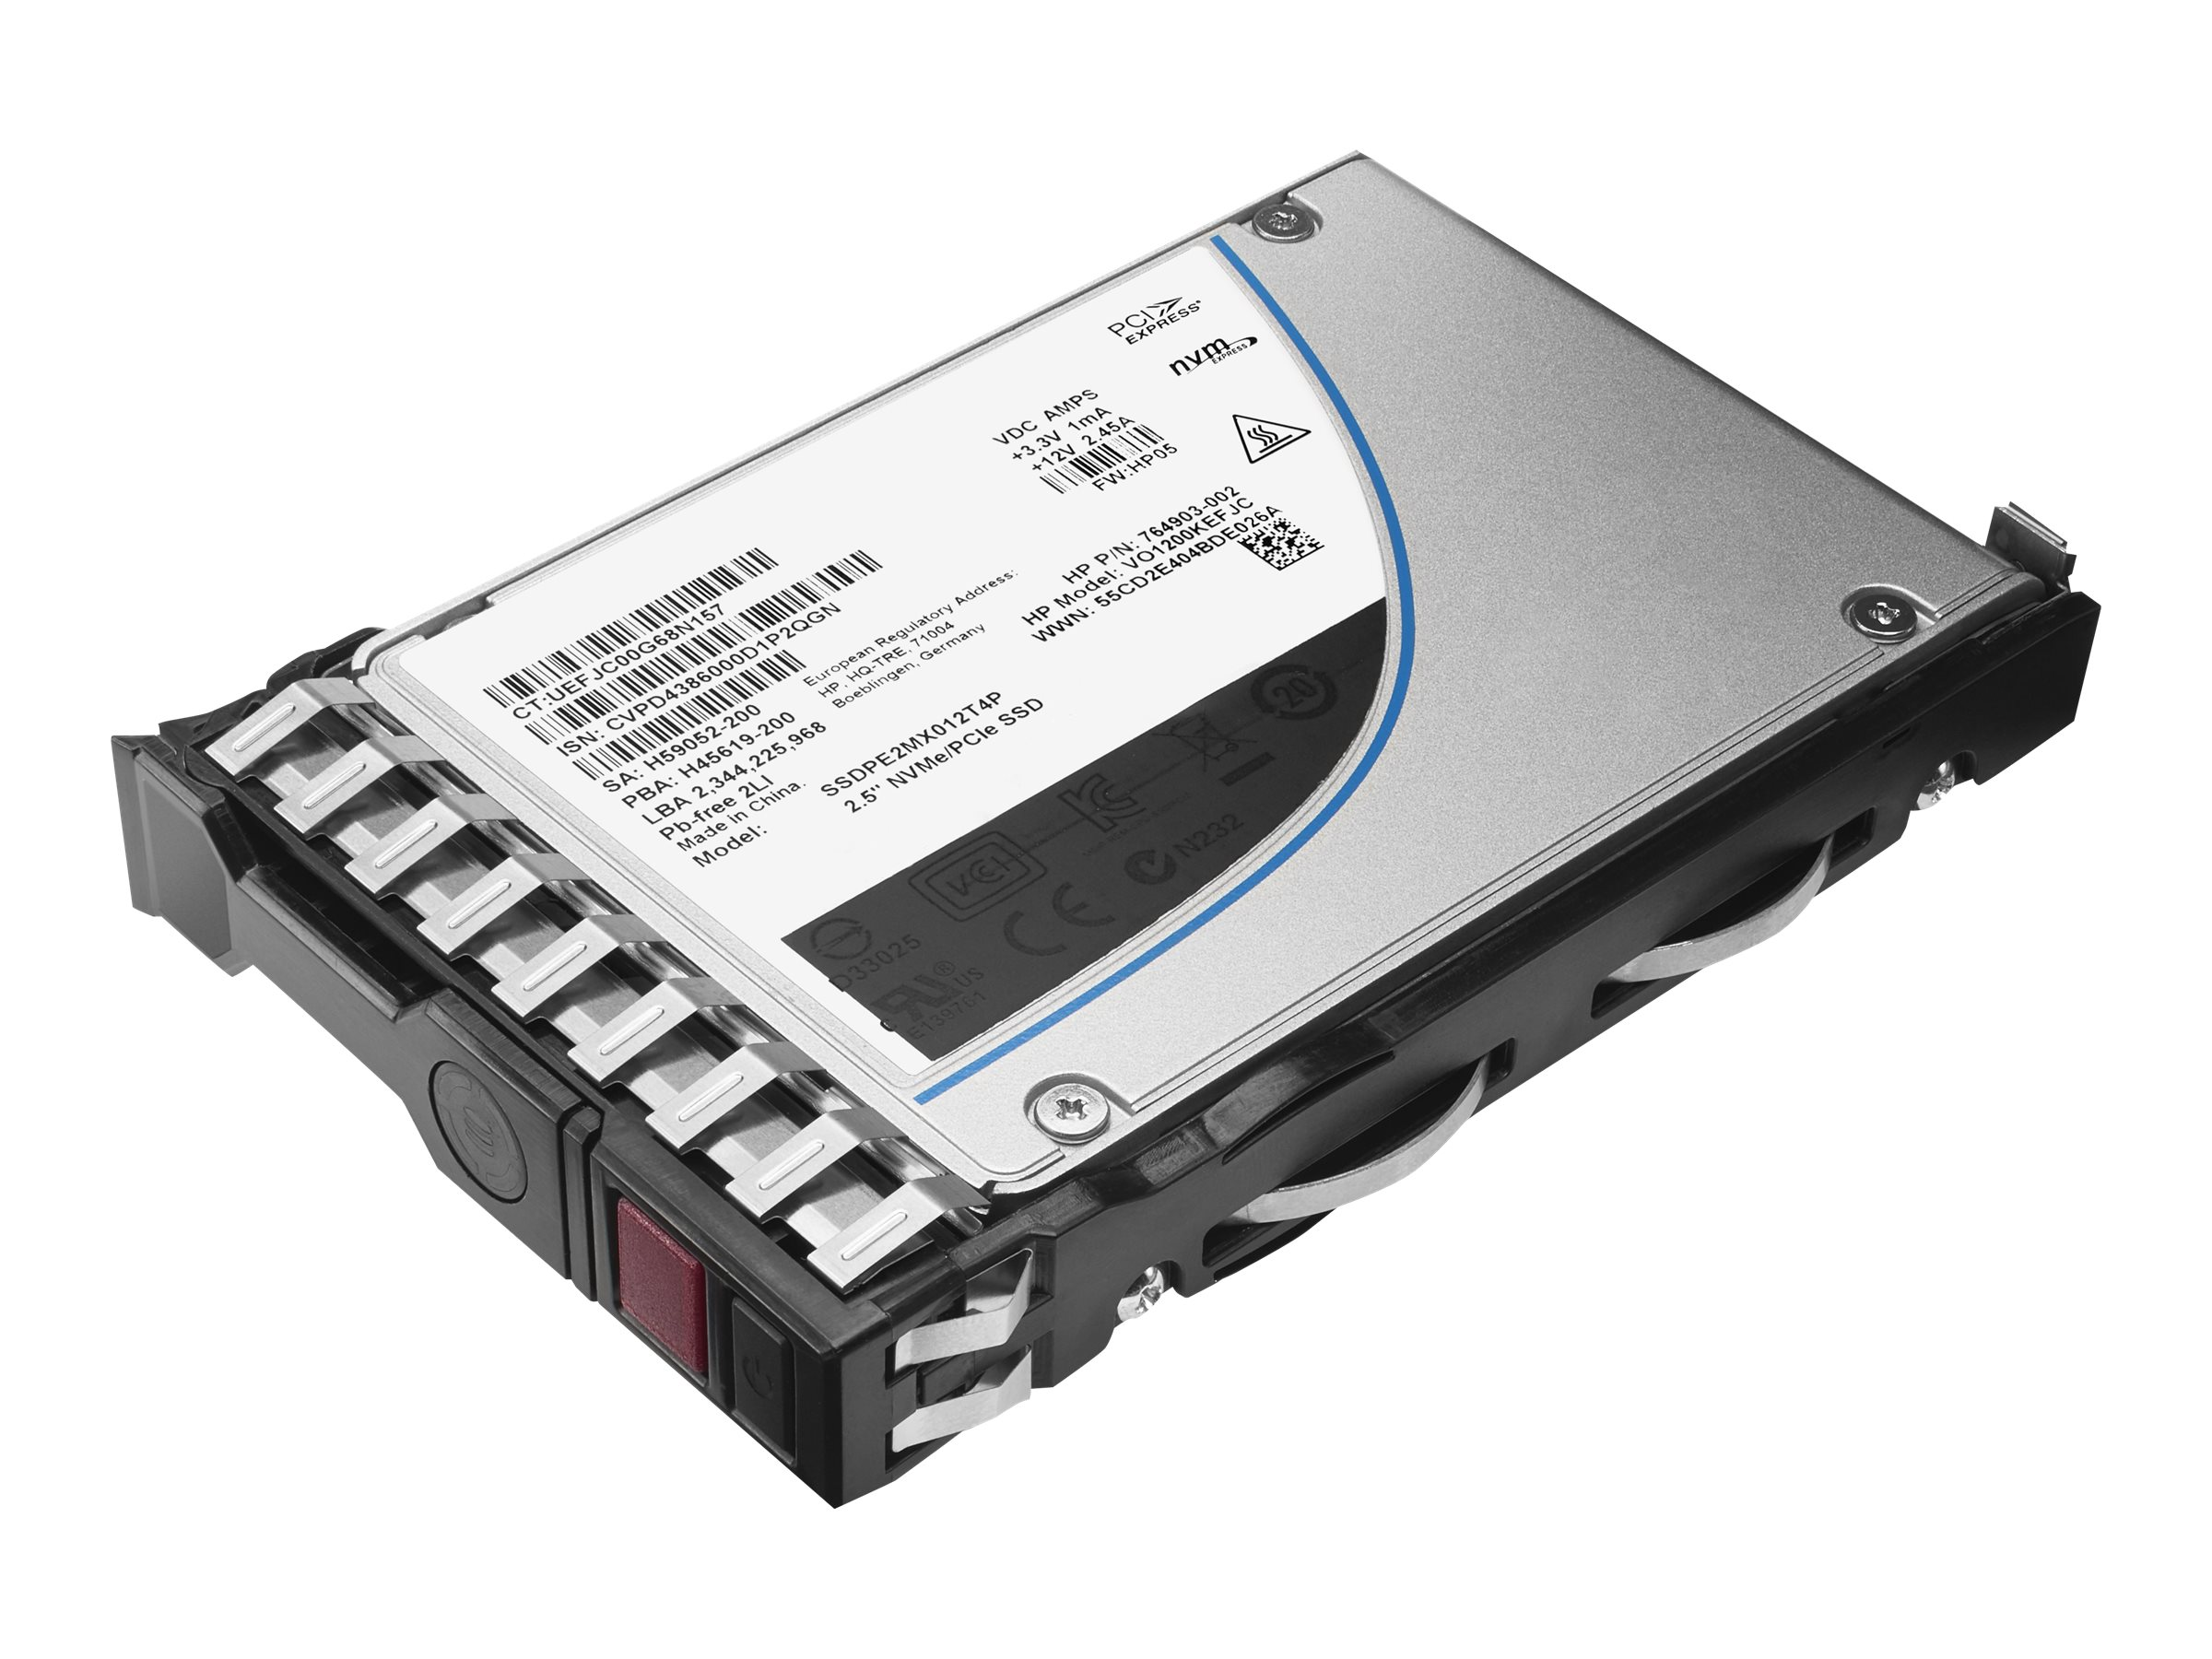 HPE 200GB SAS 12Gb s Write Intensive SFF 2.5 Hot Plug Solid State Drive for Gen8 Servers & Beyond